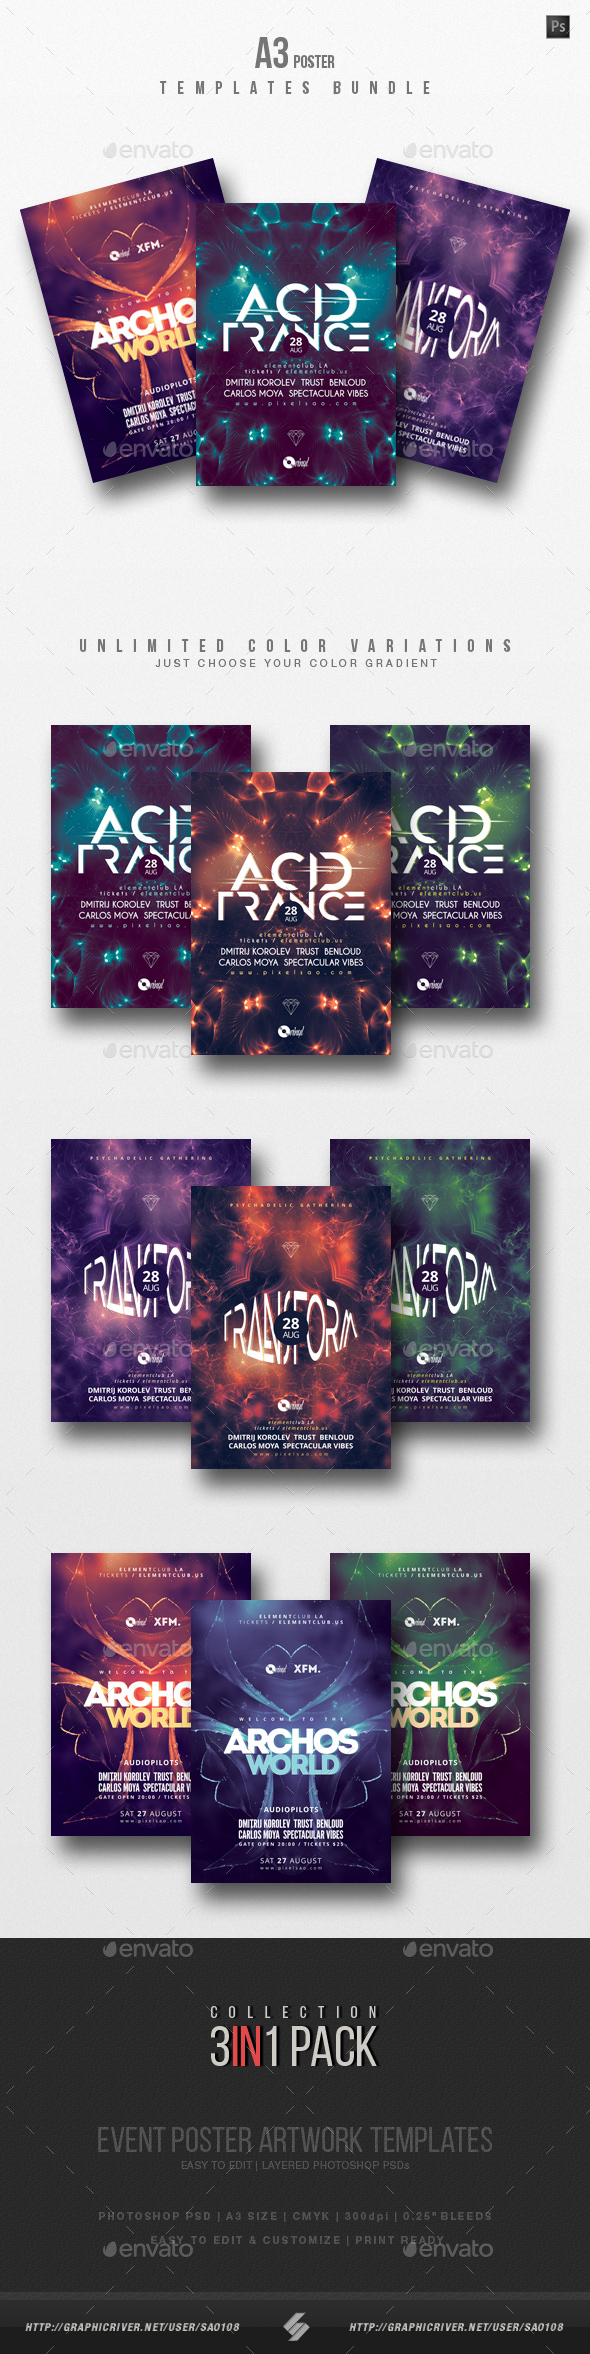 Progressive Sound vol.8 - Party Flyer / Poster Templates Bundle - Clubs & Parties Events